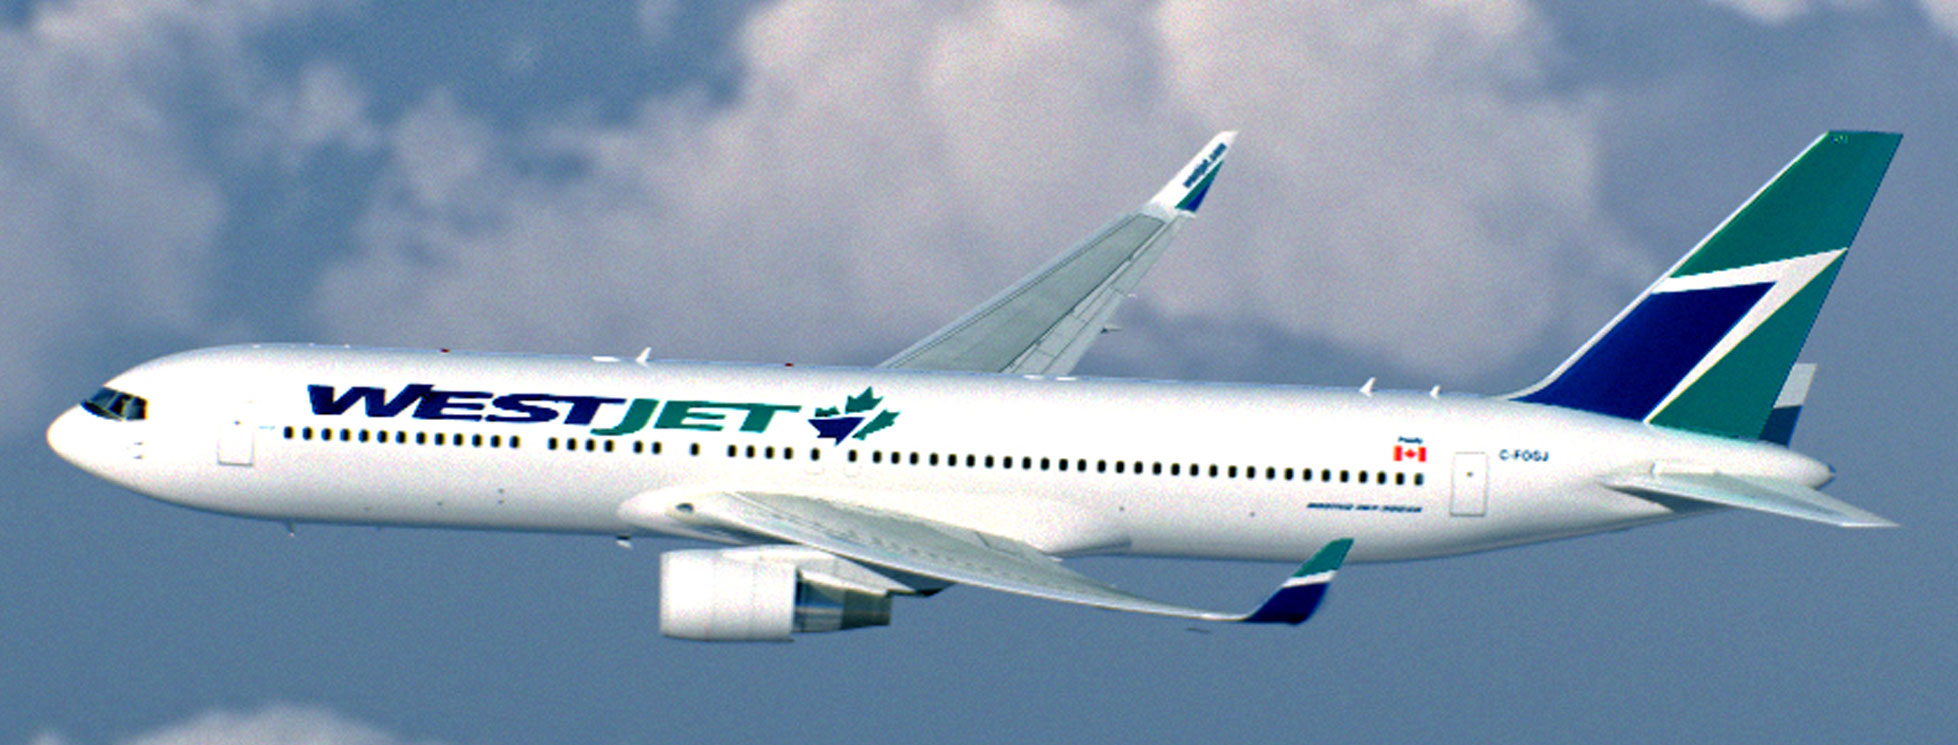 Find Best Flight Deals on WestJet Flights - Farenexus